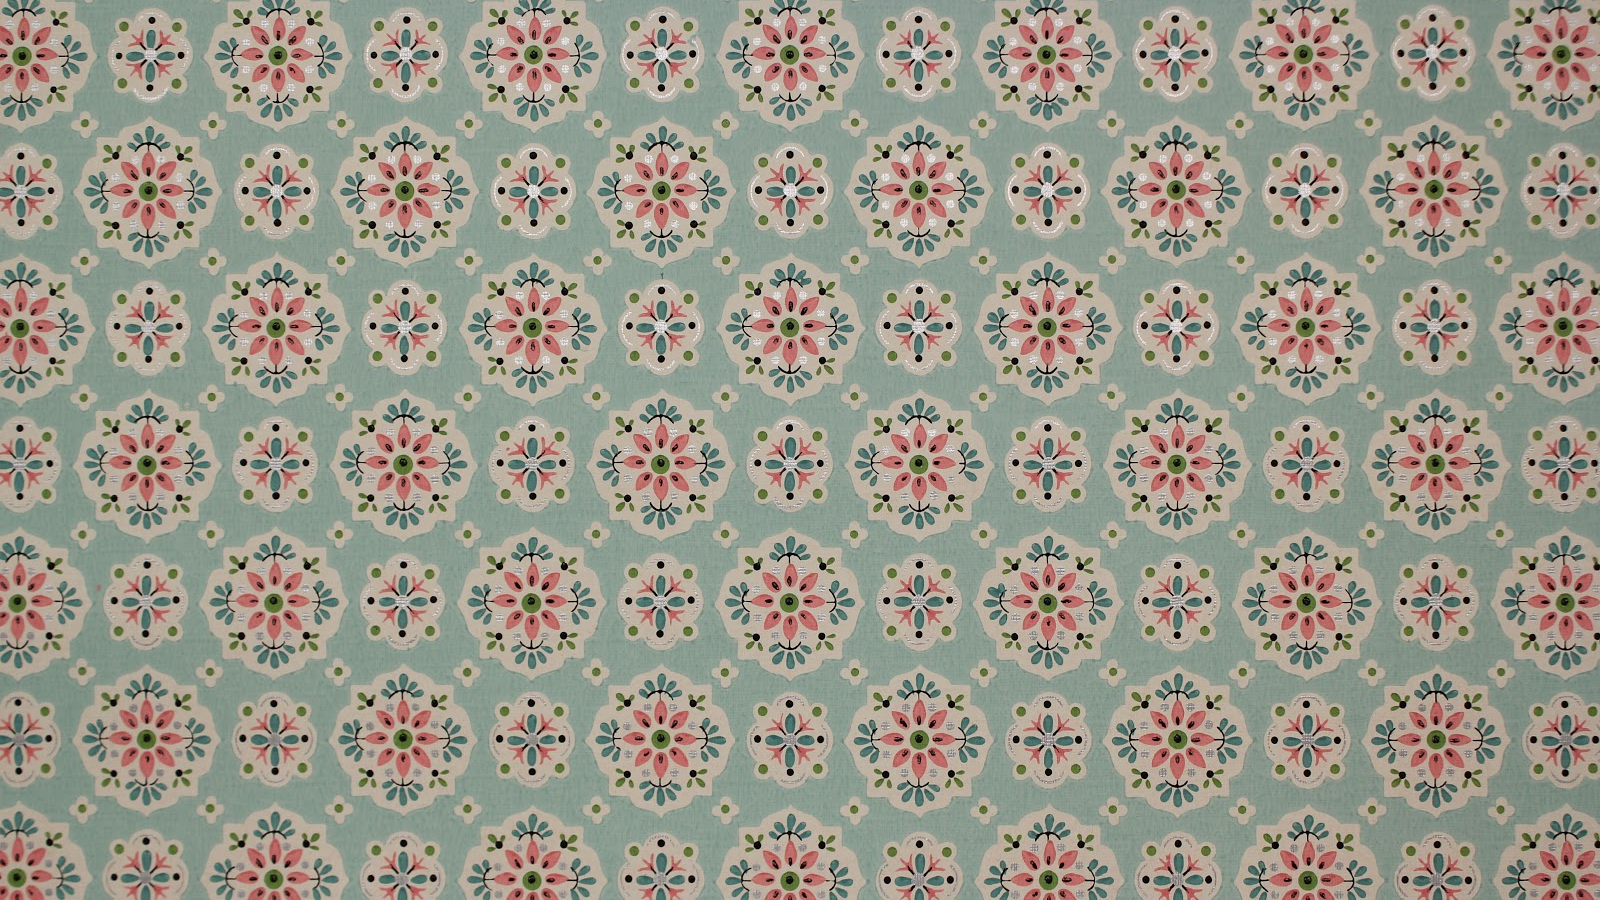 Free Download Floral Vintage Wallpaper Floral Wallpaper Tumblr